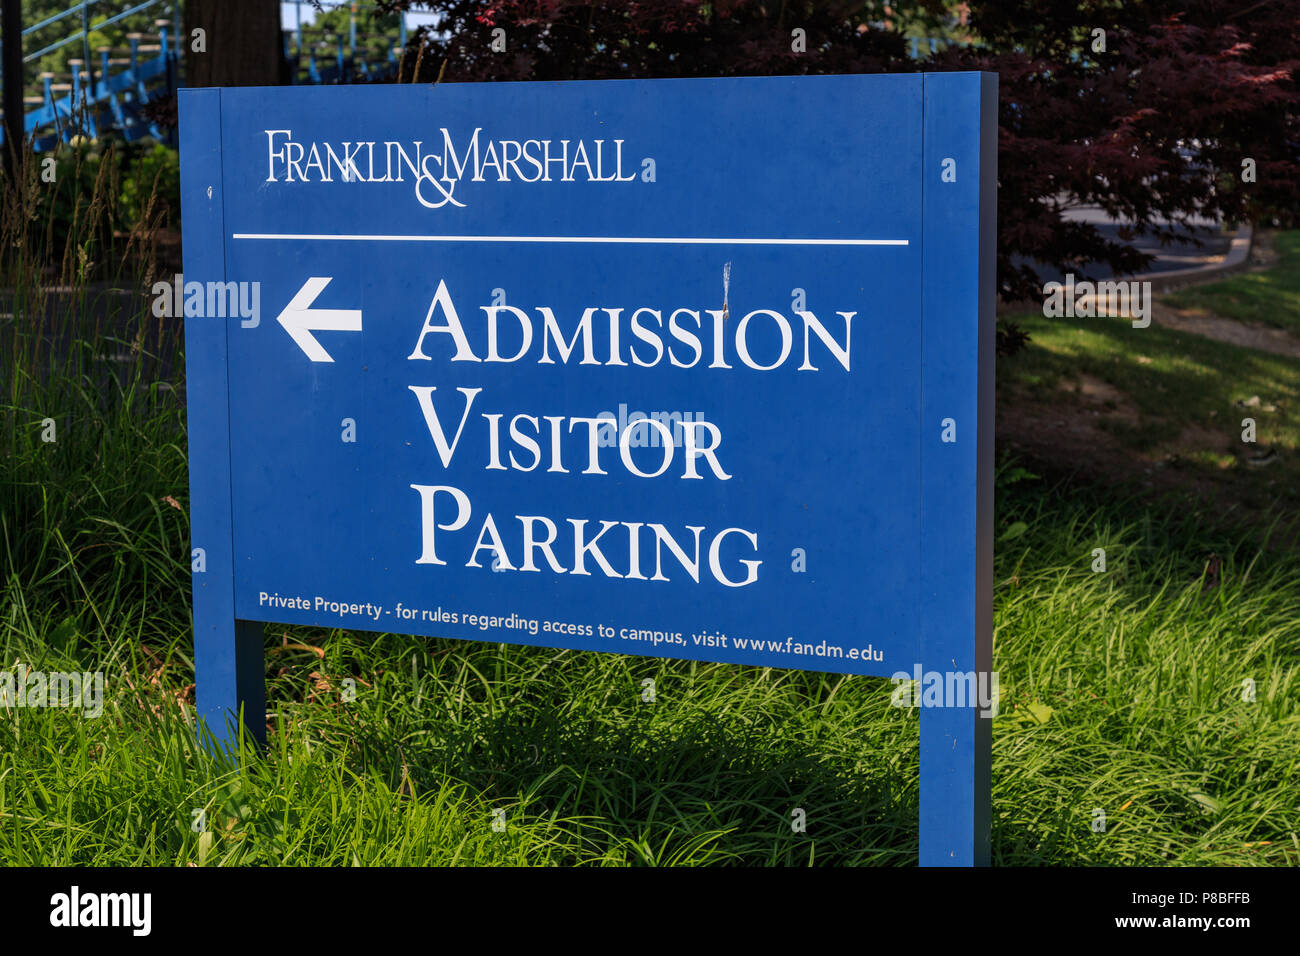 Lancaster, PA, USA - June 25, 2018: The Admissions Office sign at the Franklin and Marshall College campus in a Lancaster City. - Stock Image